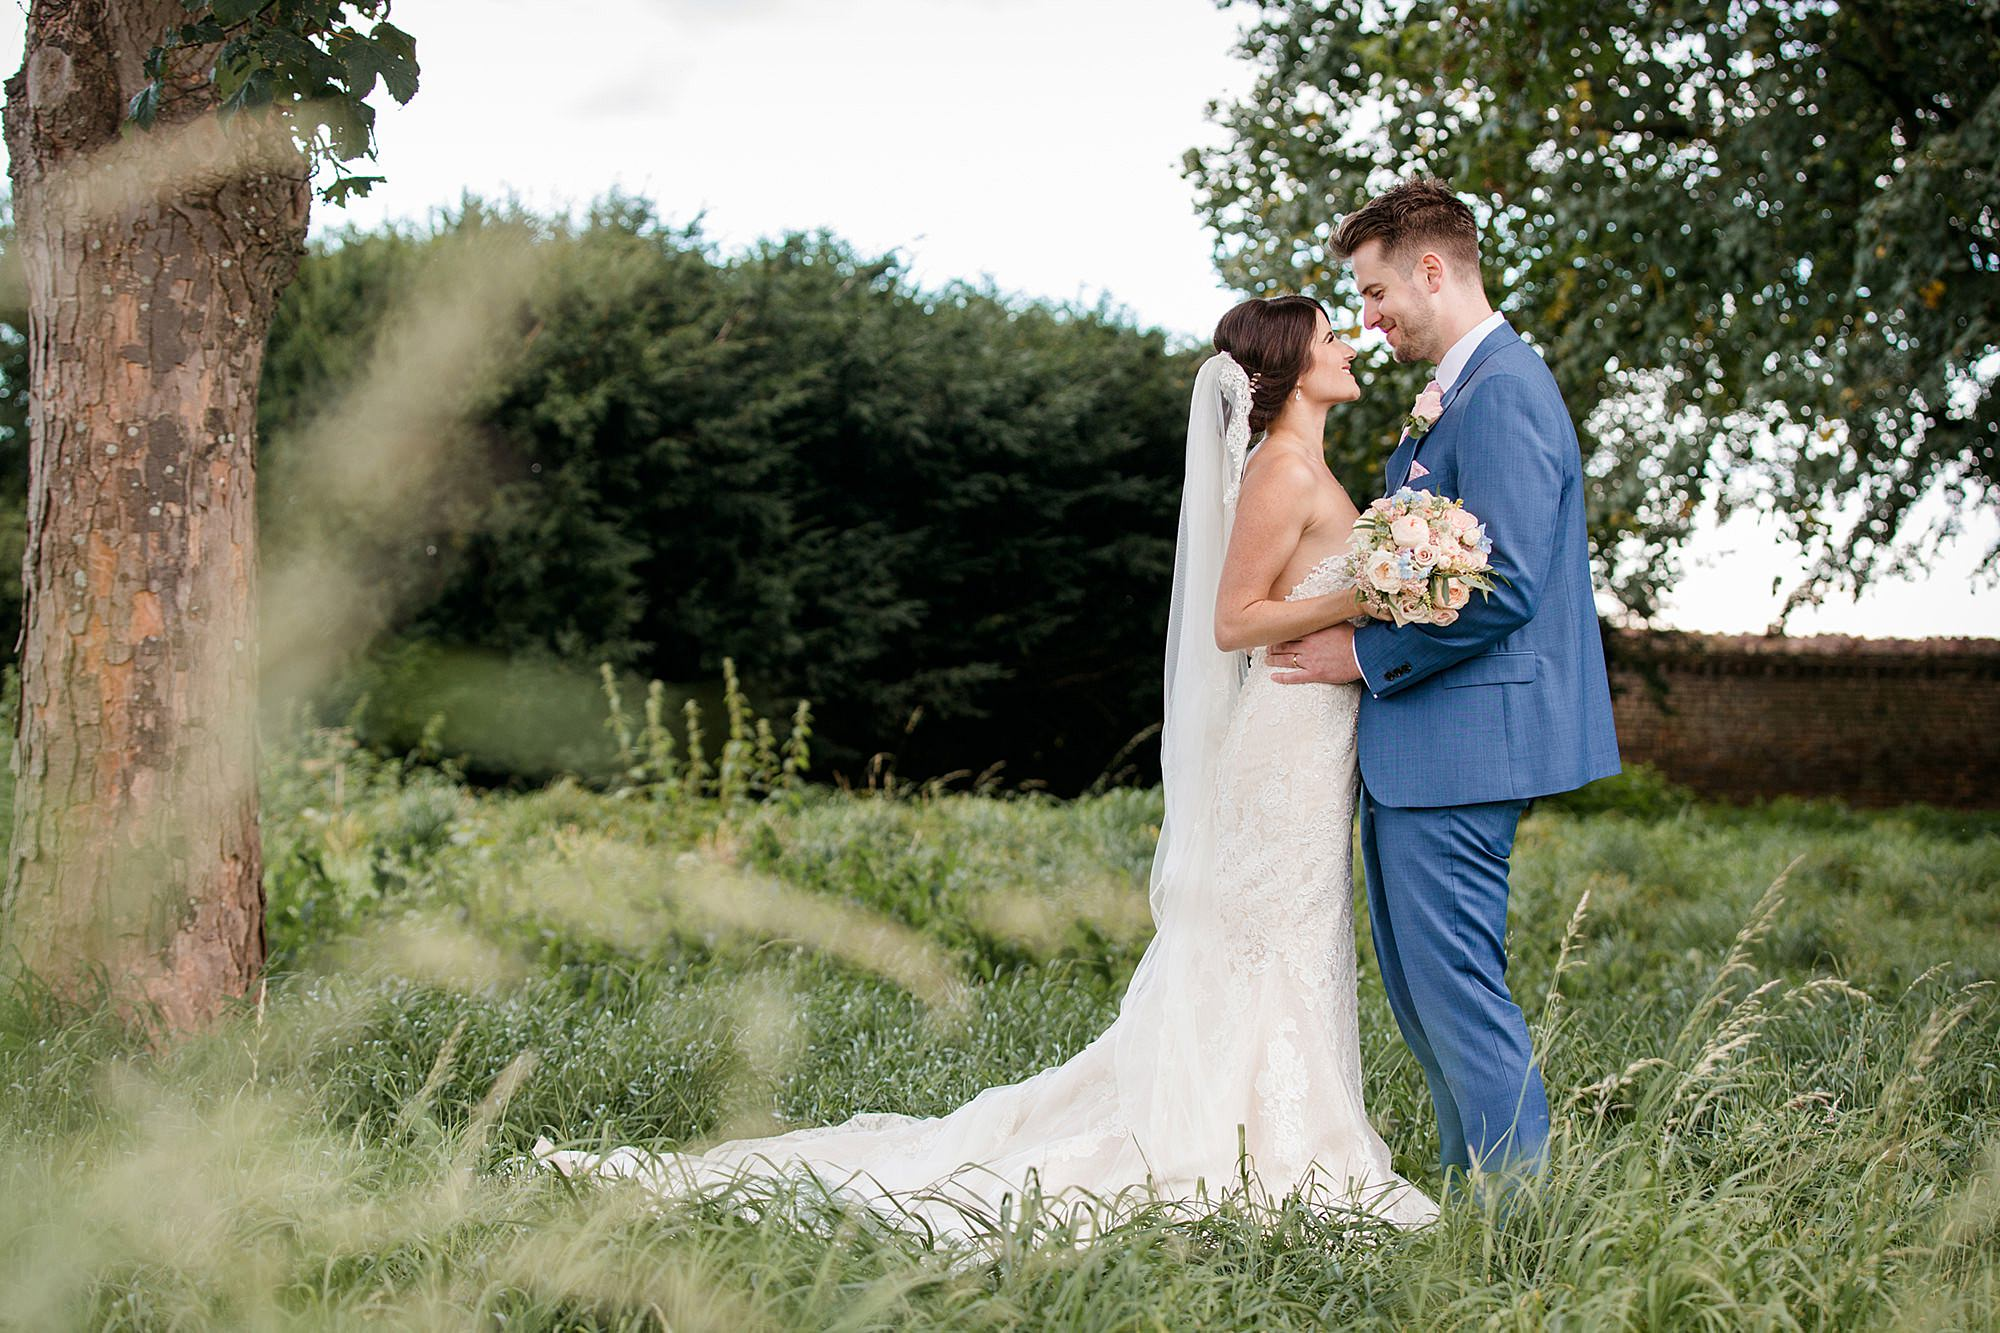 Lillibrooke Manor wedding bride and groom laugh at each other in wild garden